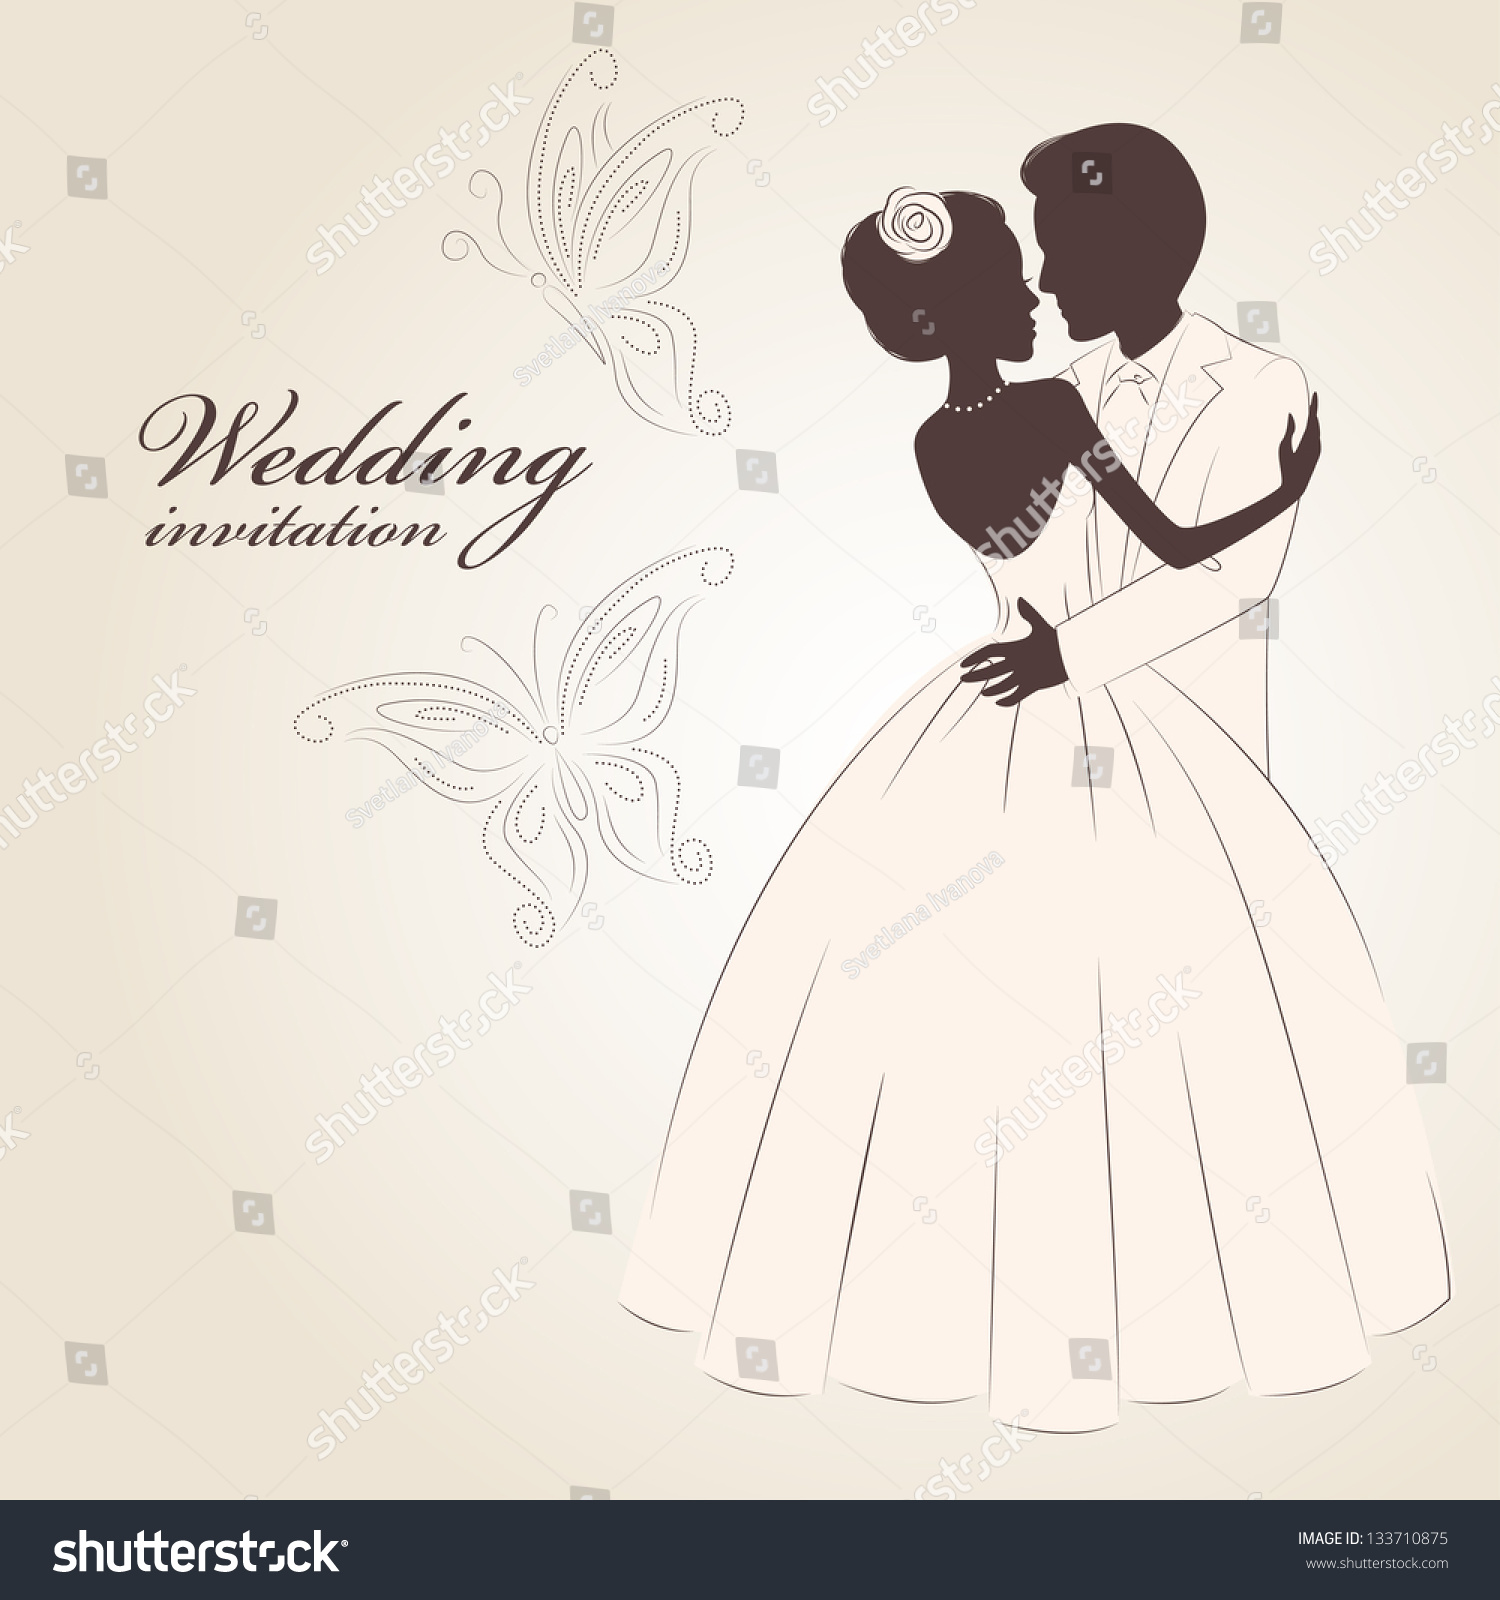 Wedding Invitation Romantic Bride Groom Dancing Stock Vector ...